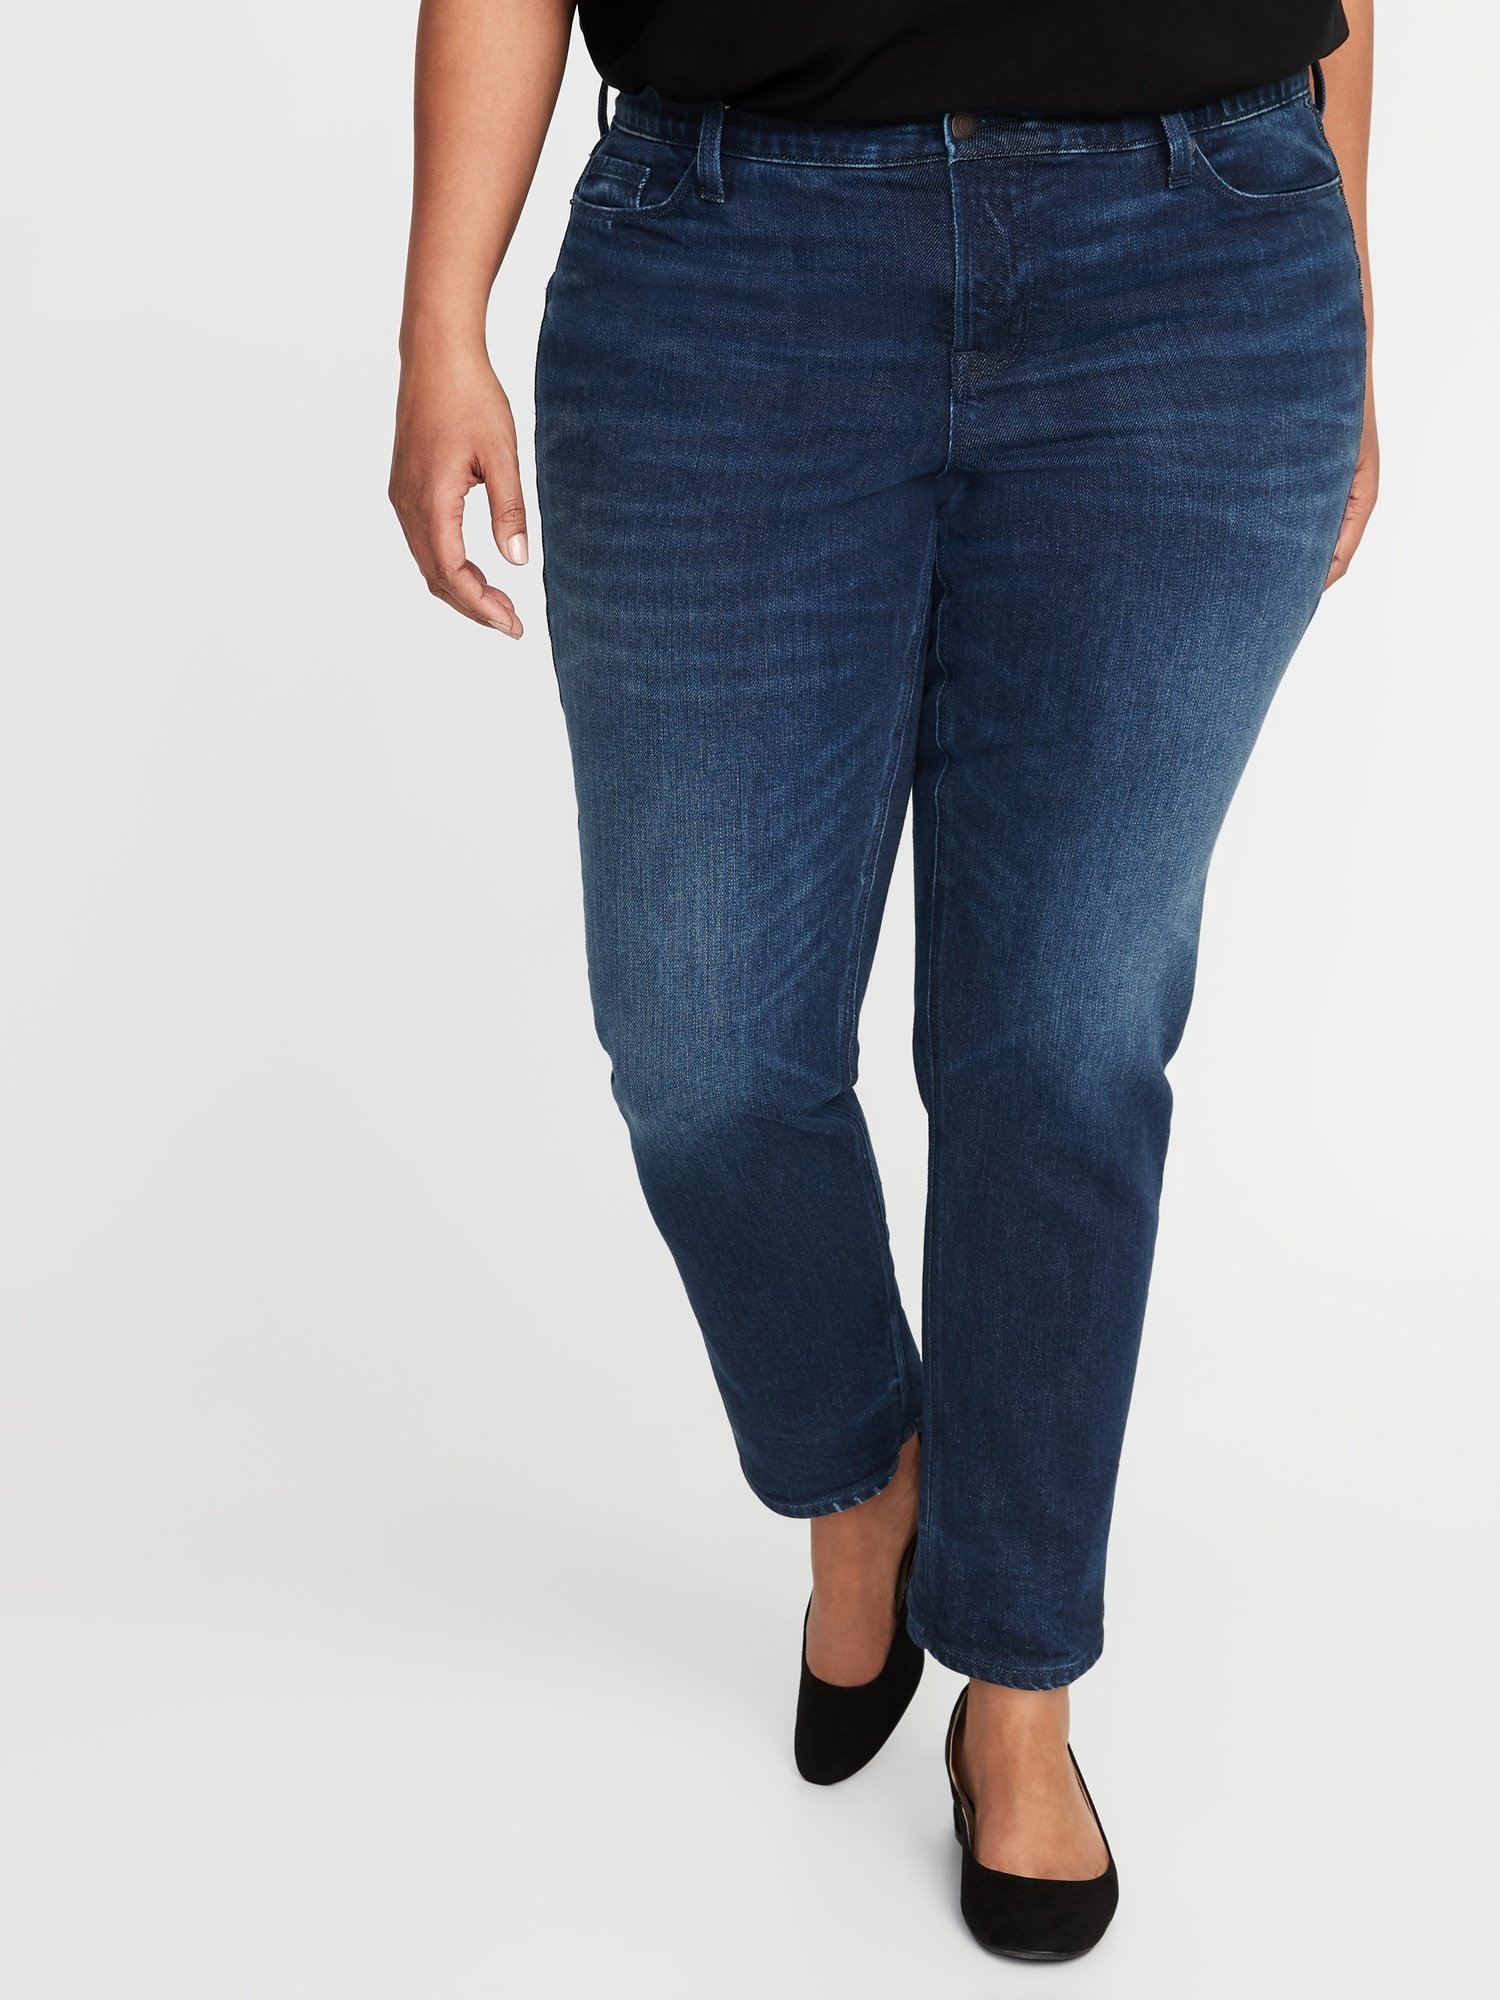 b4e050f69a40c9 High-Rise Secret-Slim Pockets + Waistband Power Slim Straight Plus-Size  Jeans